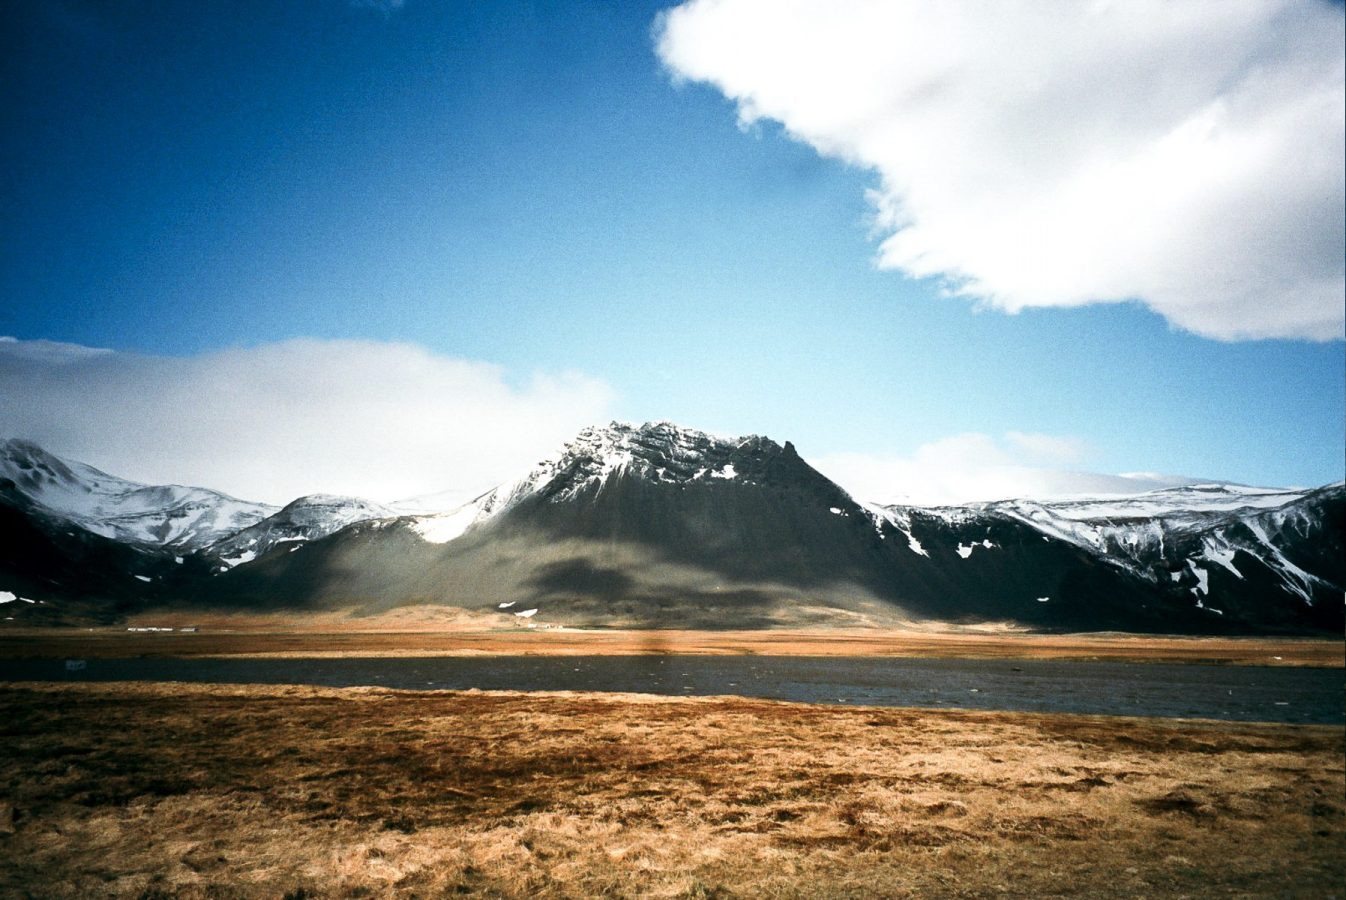 Snæfellsnes peninsula, Iceland with Yashica T4 Zoom 35mm camera